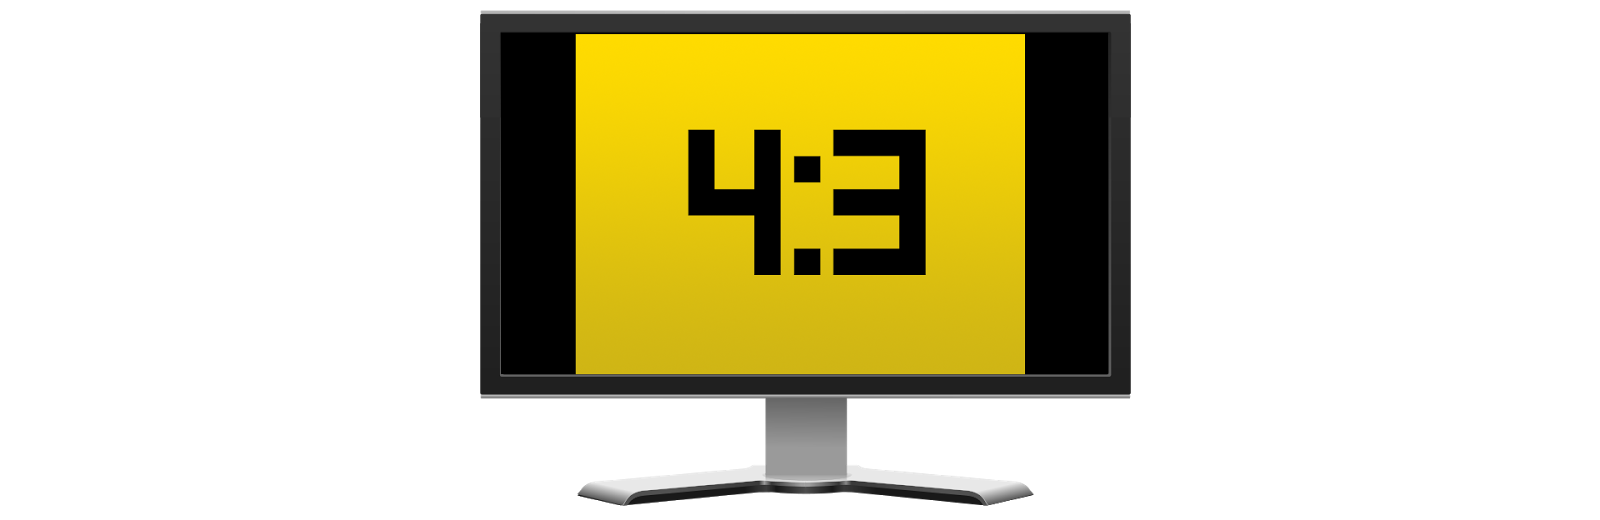 4:3 aspect ratio with vertical bars